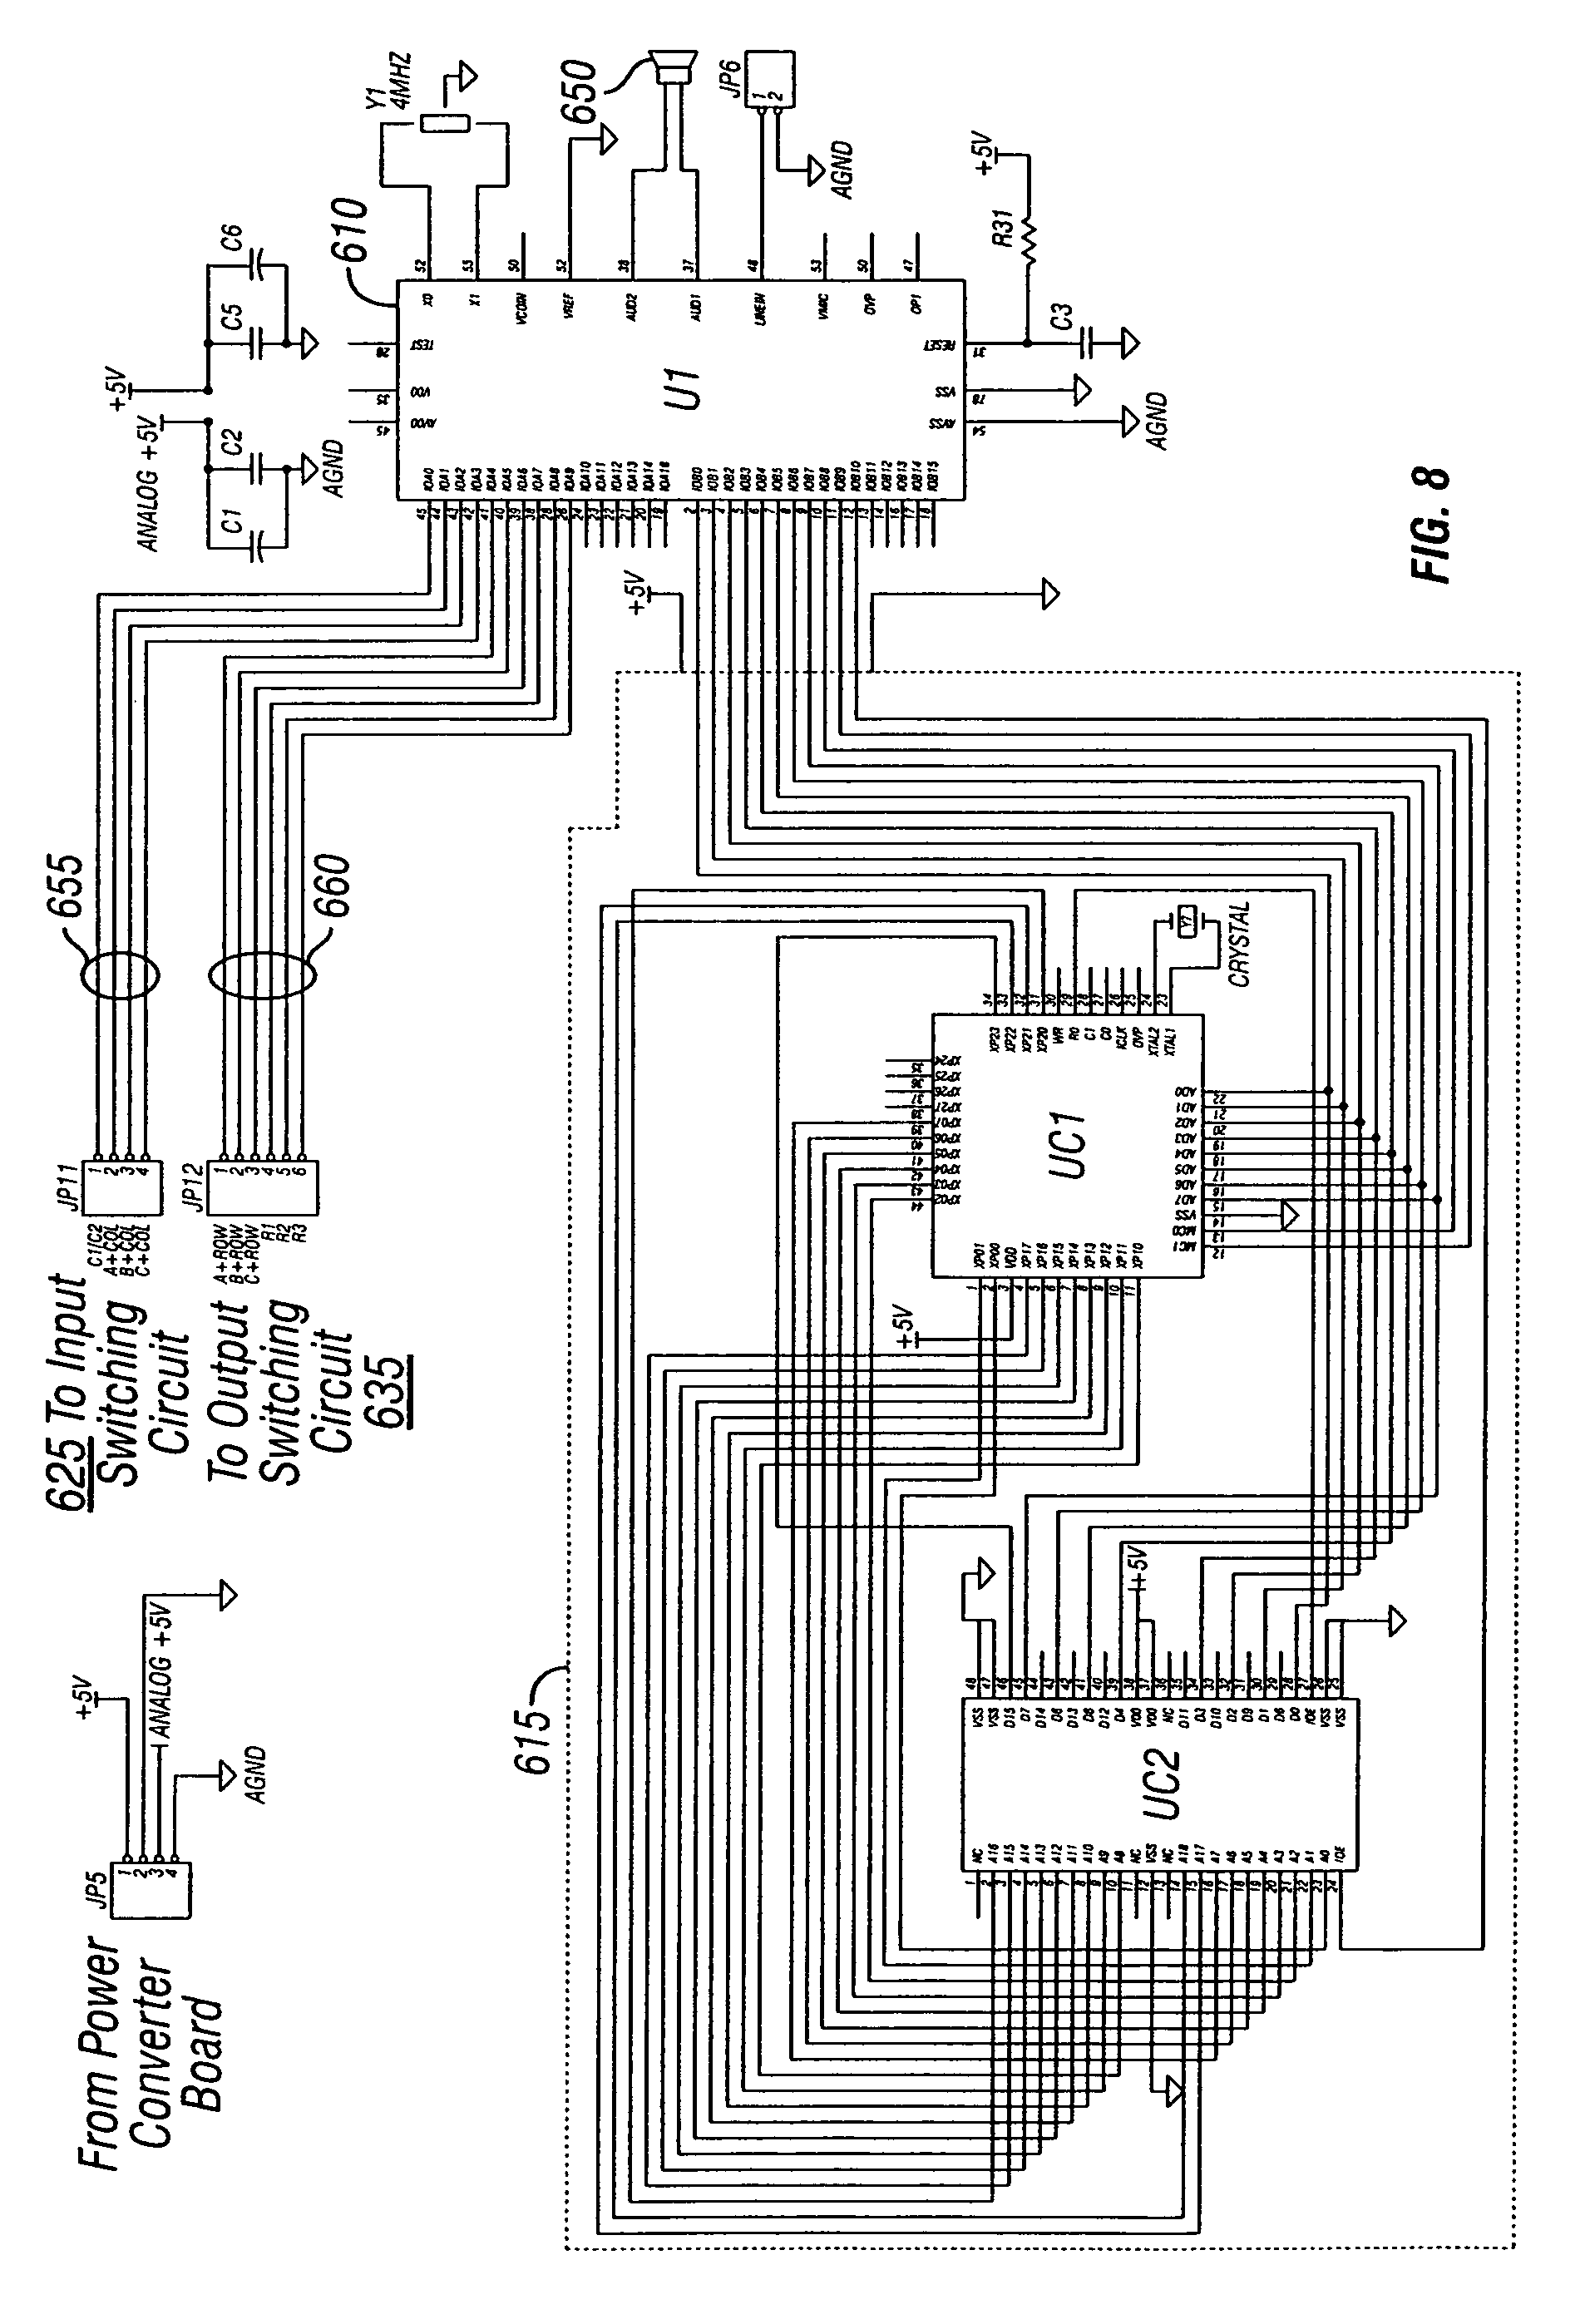 Logitech Wire Diagram Wiring Will Be A Thing American Auto Diagrams Z 640 29 Images Automotive 240v Hot Tub